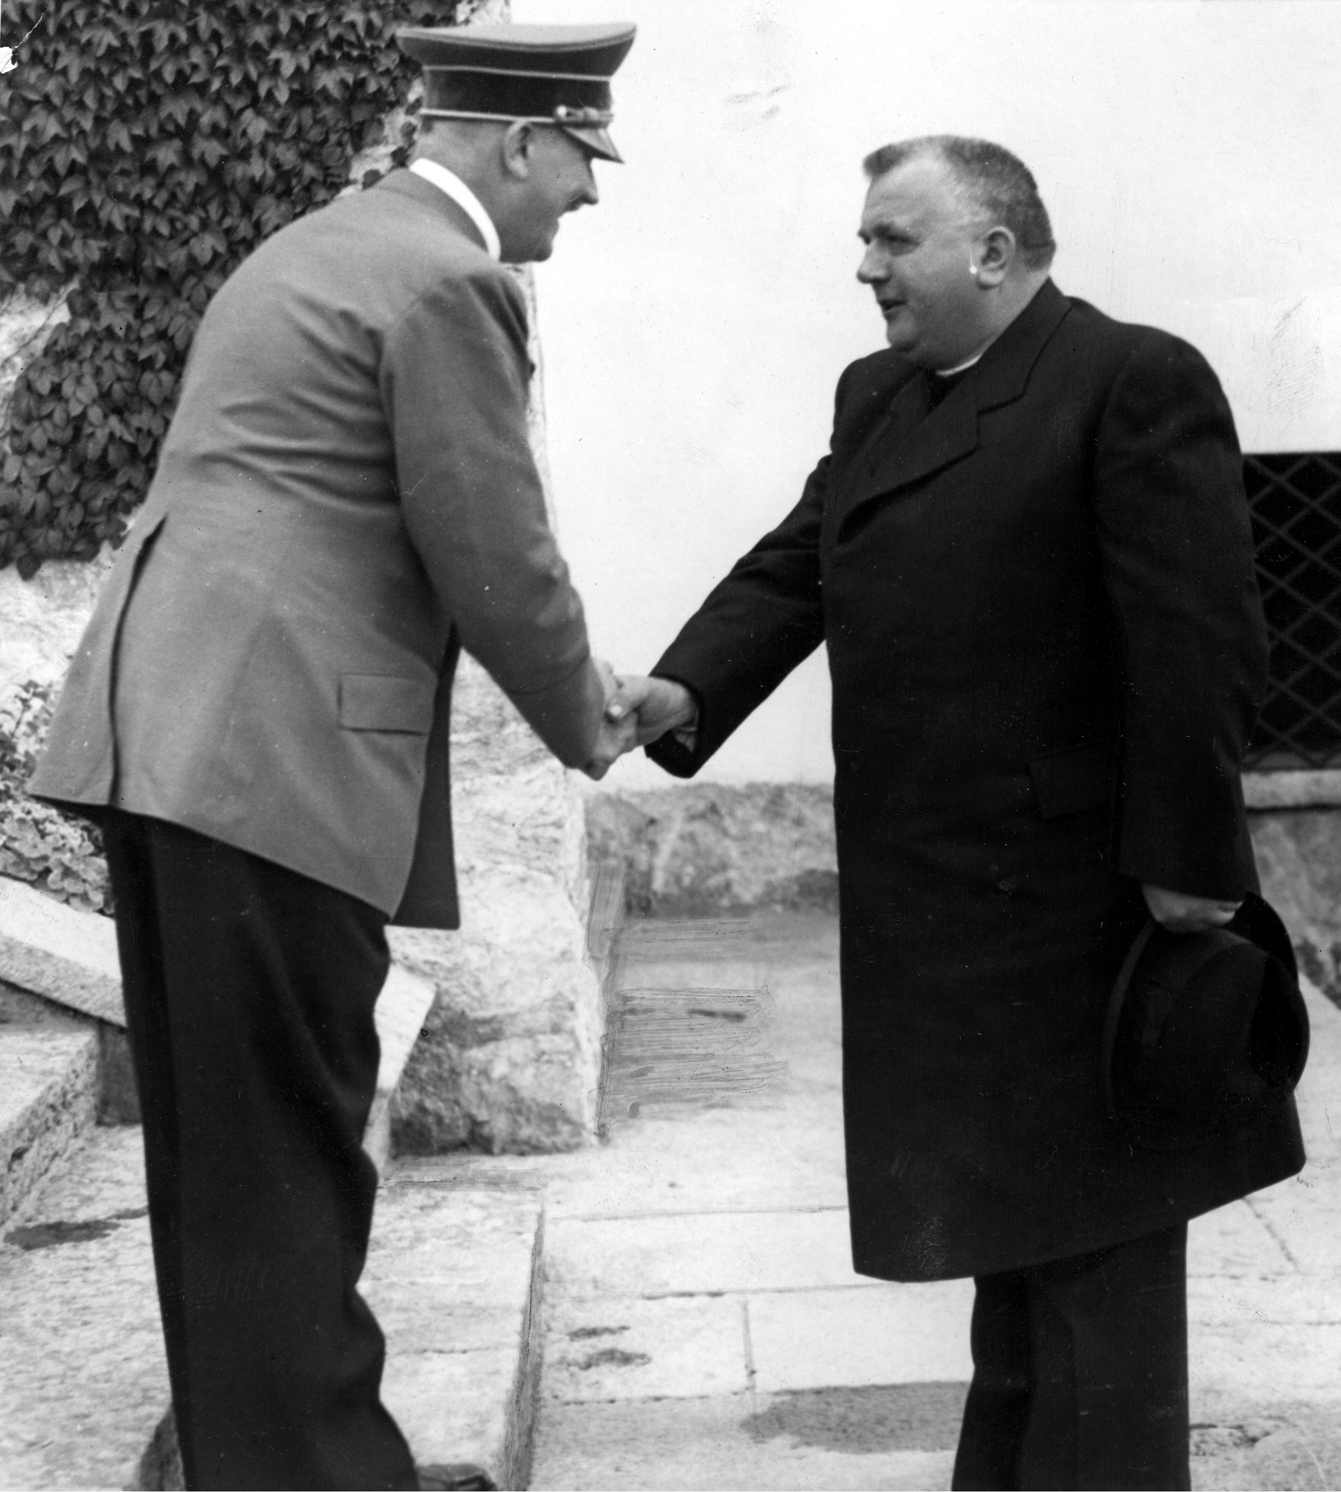 Adolf Hitler welcoming the Slovak President Dr. Jozef Tiso in front of the Berghof